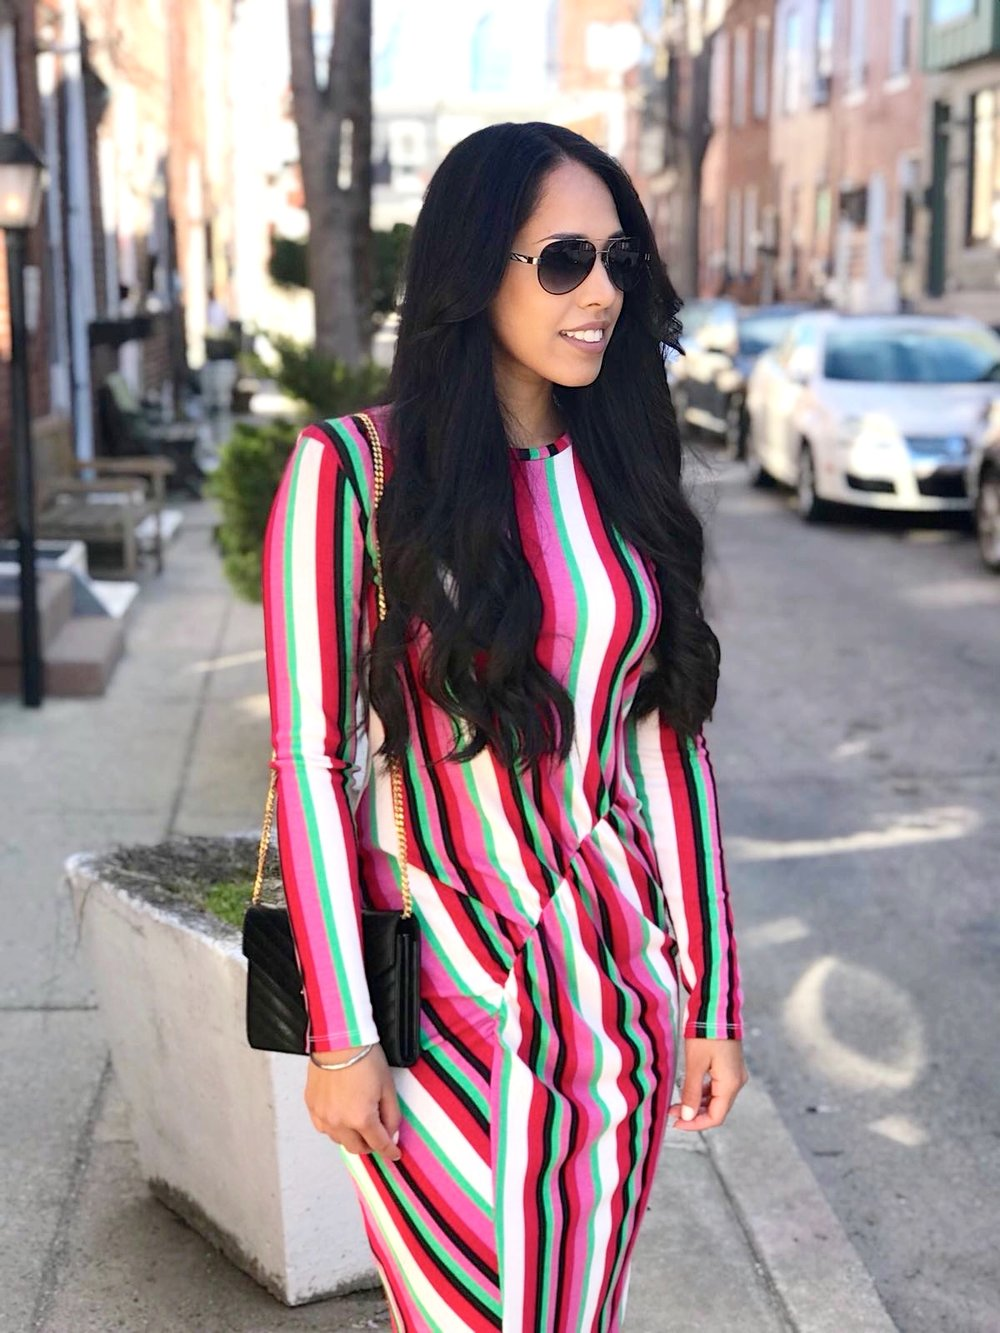 Colorful-Striped-Dress-For-The-First-Day-of-Spring.jpg